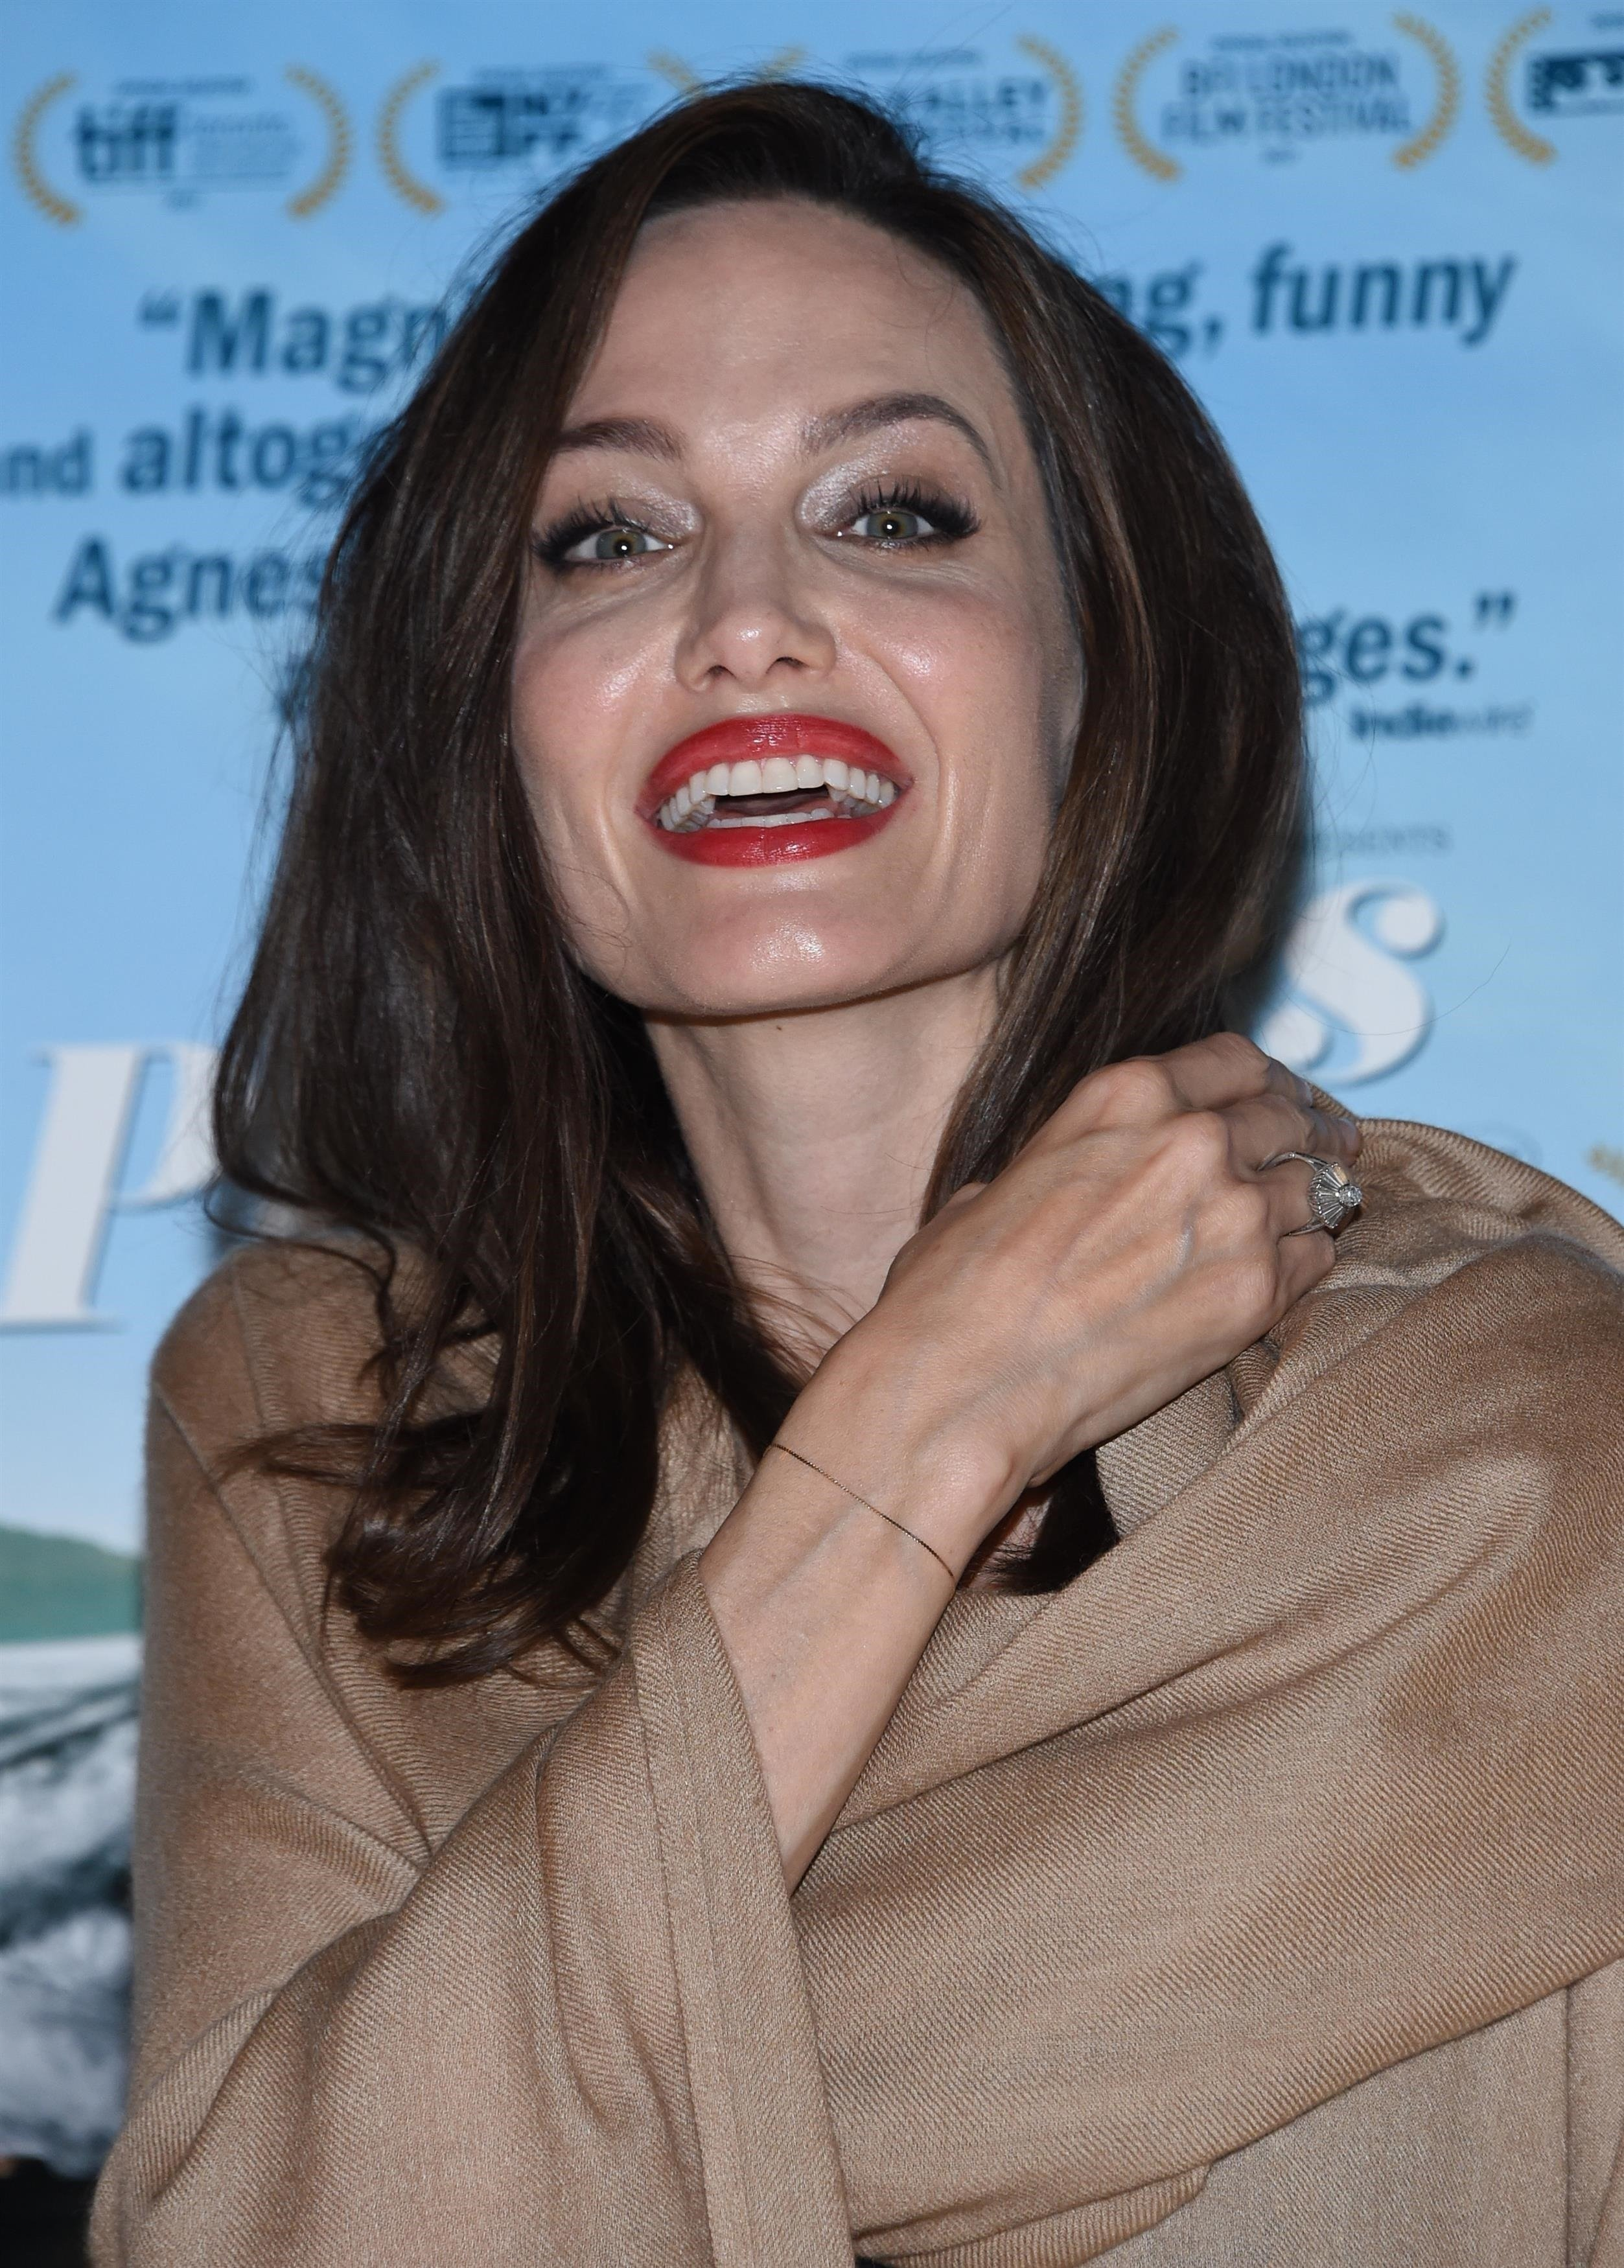 ** RIGHTS: WORLDWIDE EXCEPT IN FRANCE ** West Hollywood, CA  - Stars at the premiere of 'Faces Places' held at the Pacific Design center.  Pictured: Angelina Jolie  BACKGRID USA 11 OCTOBER 2017   USA: +1 310 798 9111 / usasales@backgrid.com  UK: +44 208 344 2007 / uksales@backgrid.com  *UK Clients - Pictures Containing Children Please Pixelate Face Prior To Publication*, Image: 352552538, License: Rights-managed, Restrictions: , Model Release: no, Credit line: Profimedia, AKM-GSI